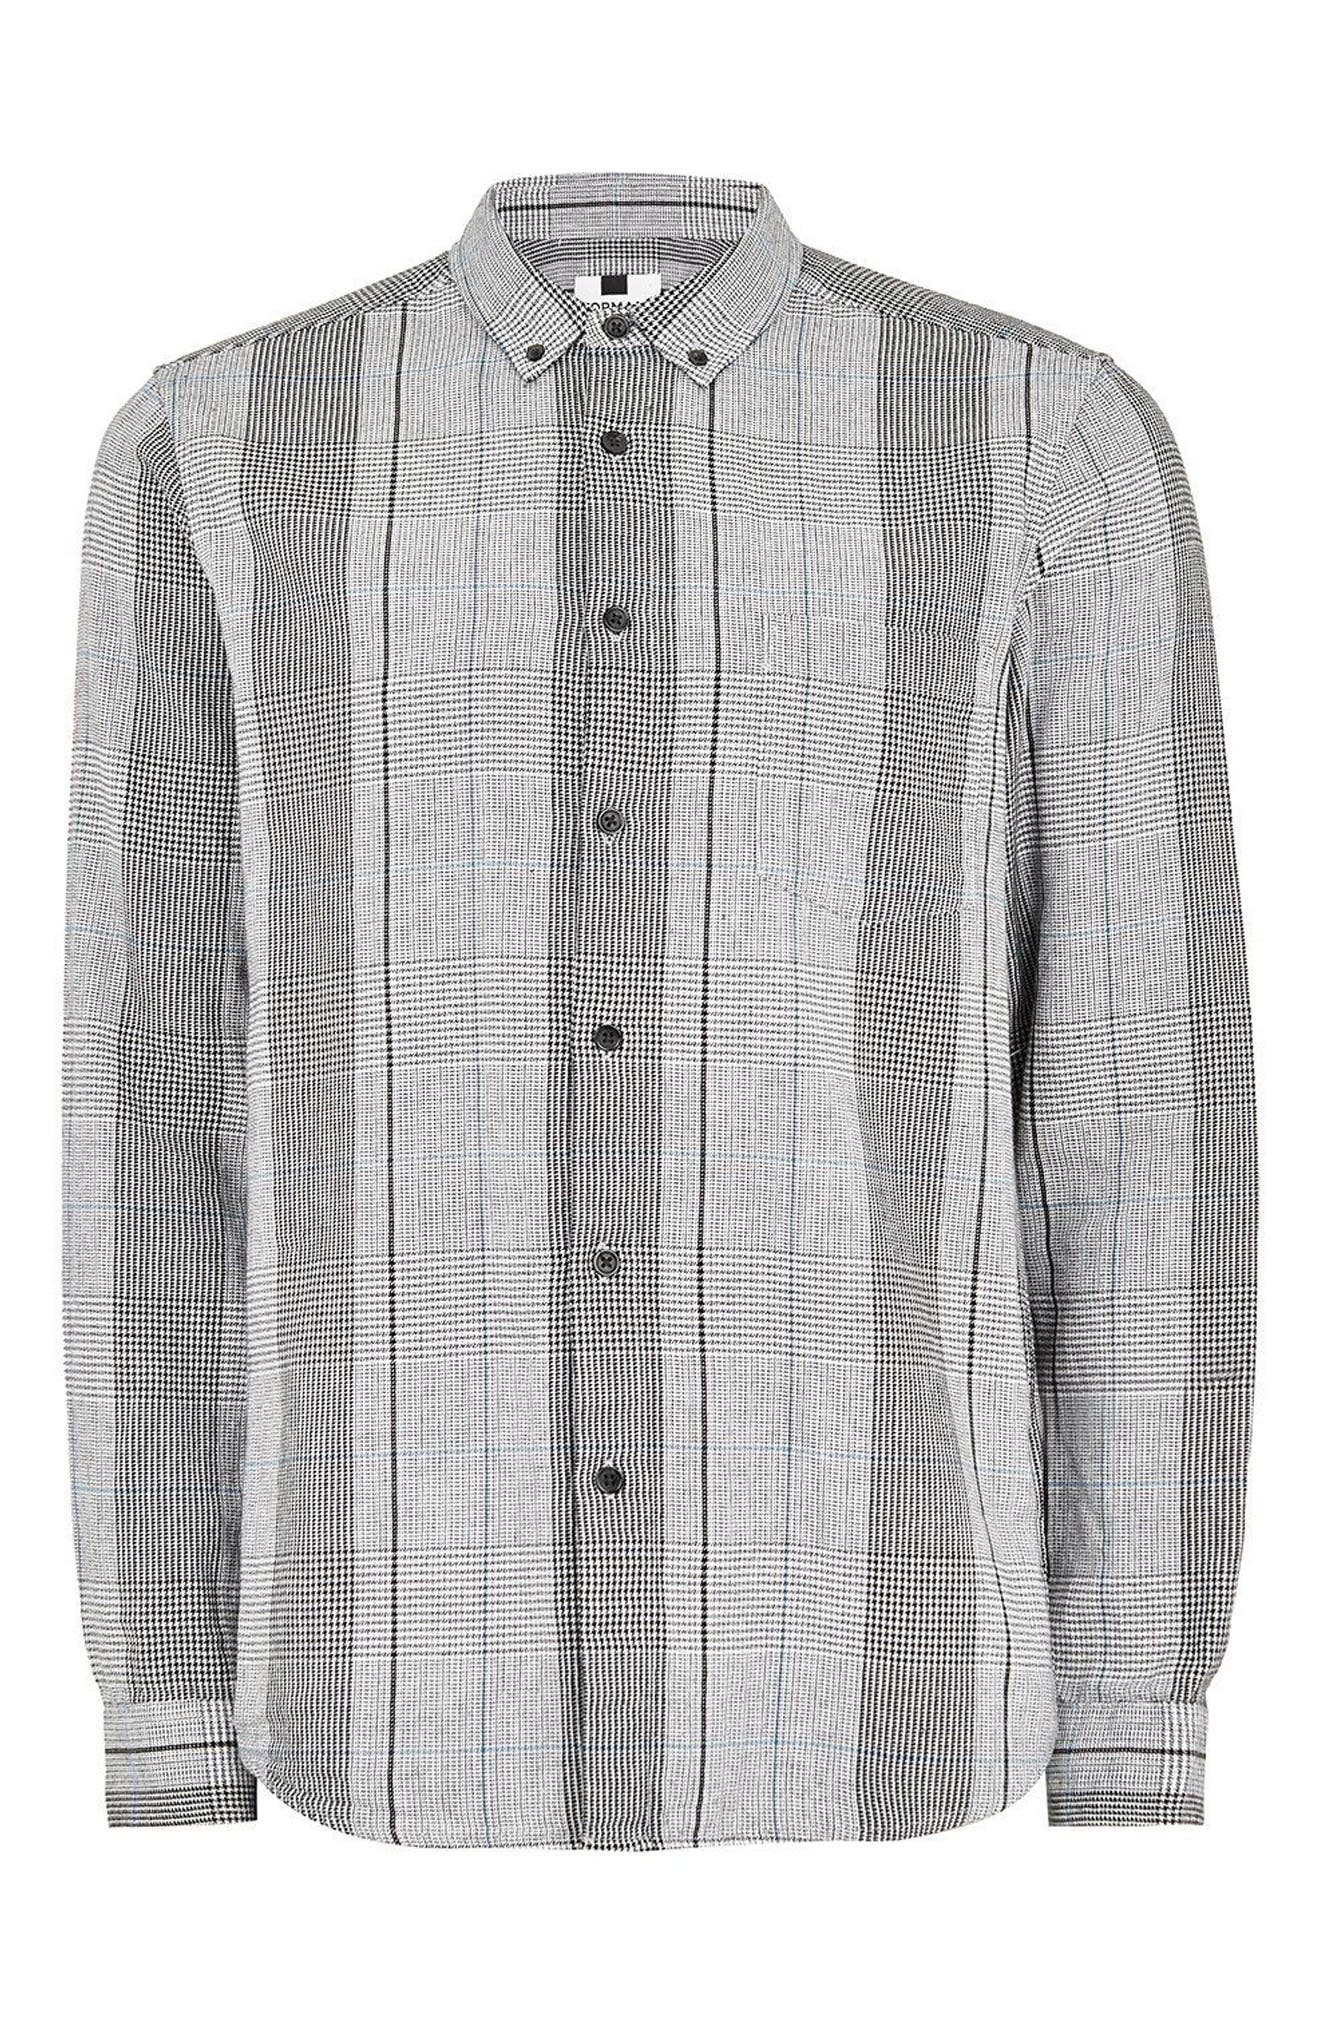 Long Sleeve Heritage Check Classic Fit Sport Shirt,                             Alternate thumbnail 3, color,                             Grey Multi